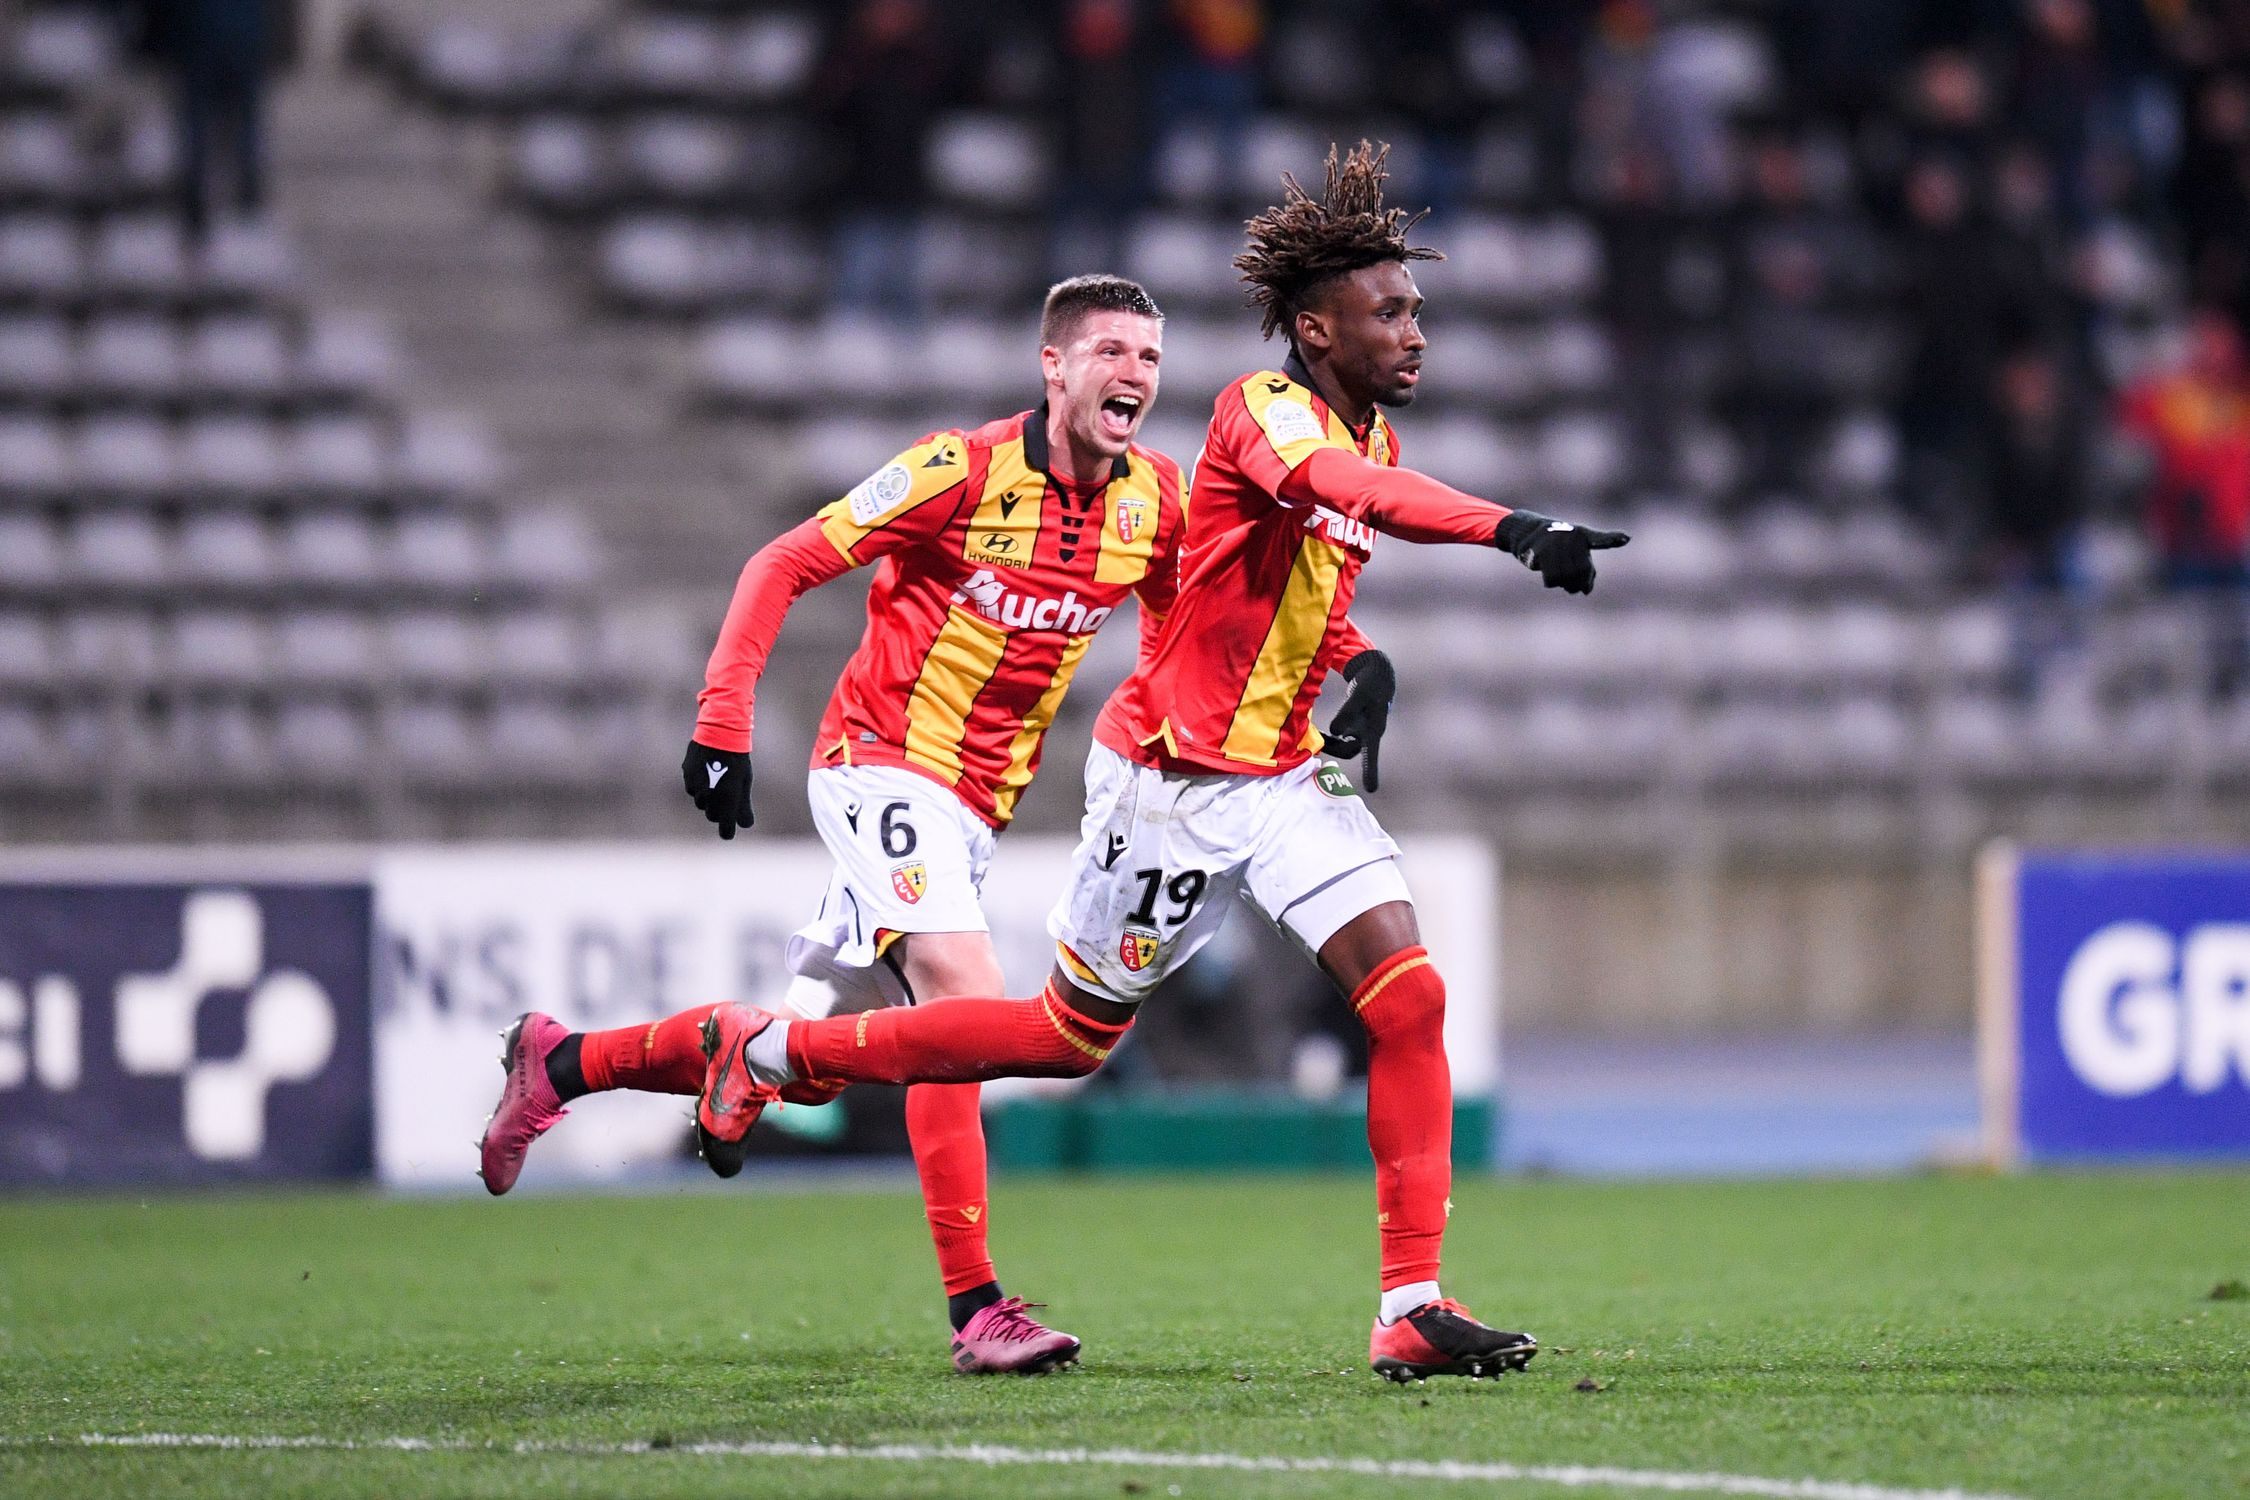 Football - Ligue 2 - Ligue 2 : Lens-Orléans en direct